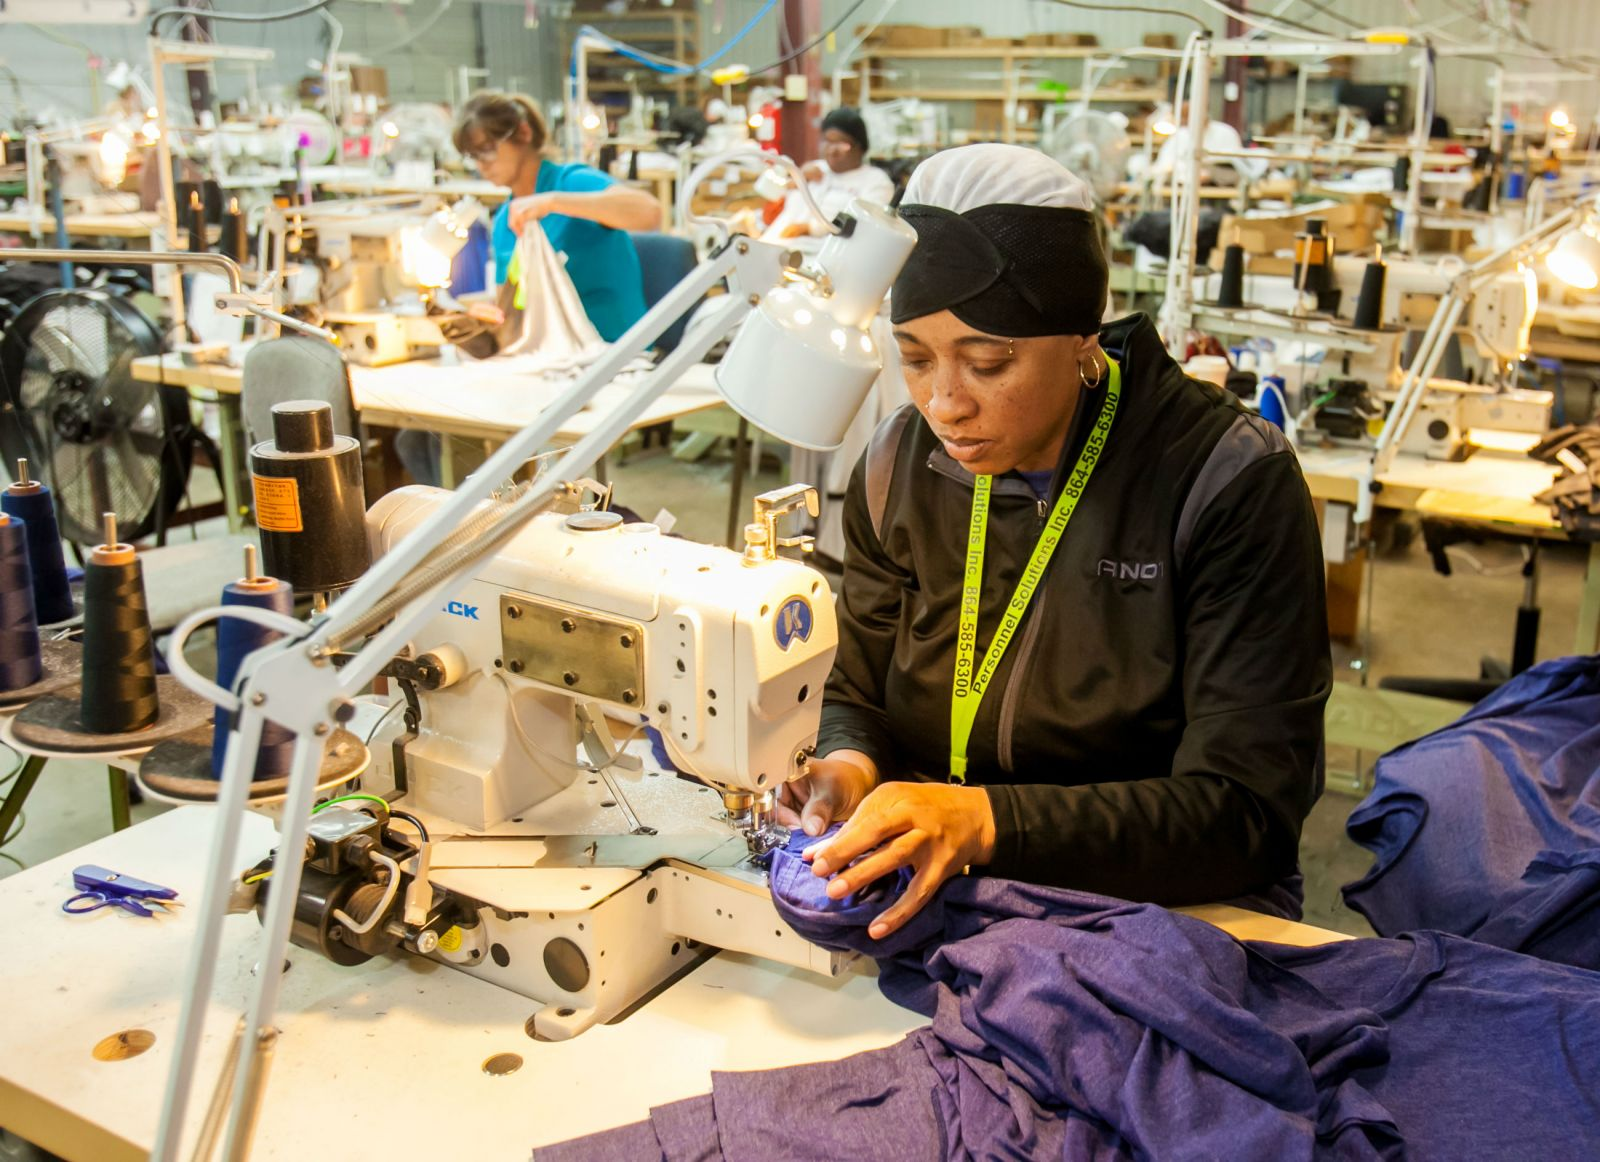 Taiwanna Rice sews sleeves of a T-shirt at Vapor Apparel's plant in Union. (Photo/Jeff Blake)